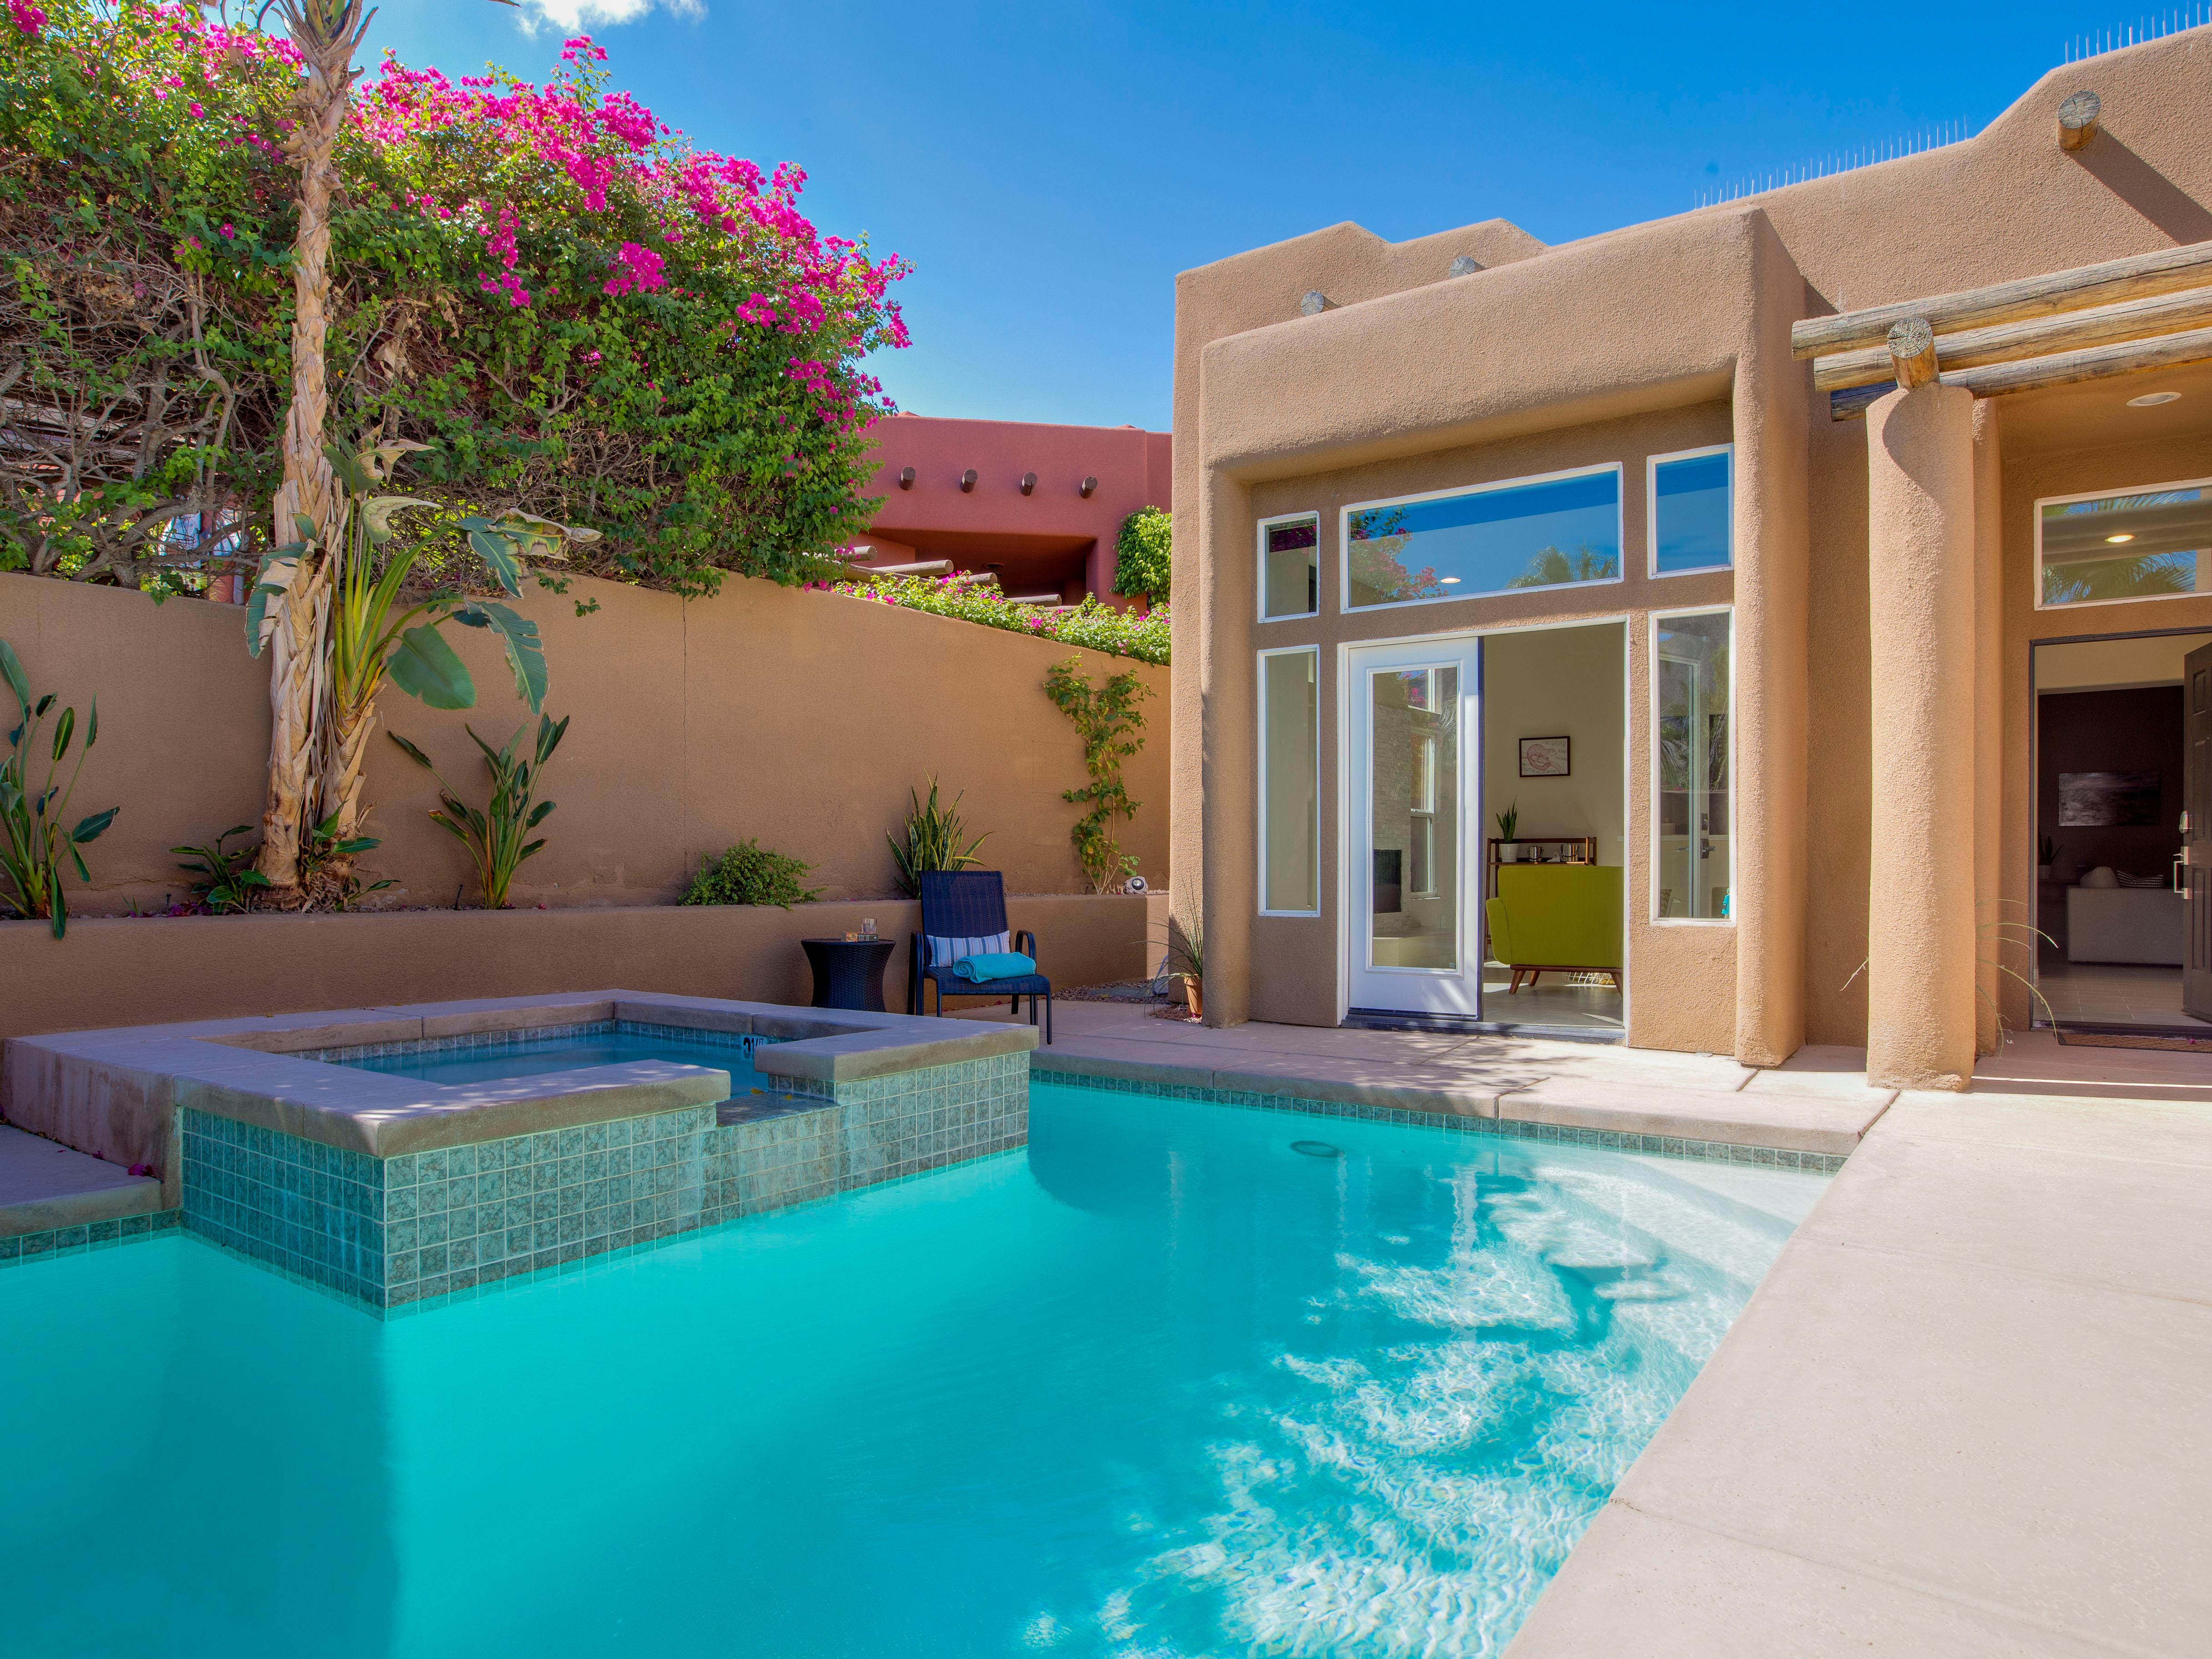 Property Image 1 - Beautiful Upgraded Pool Home Near Old Town in La Quinta